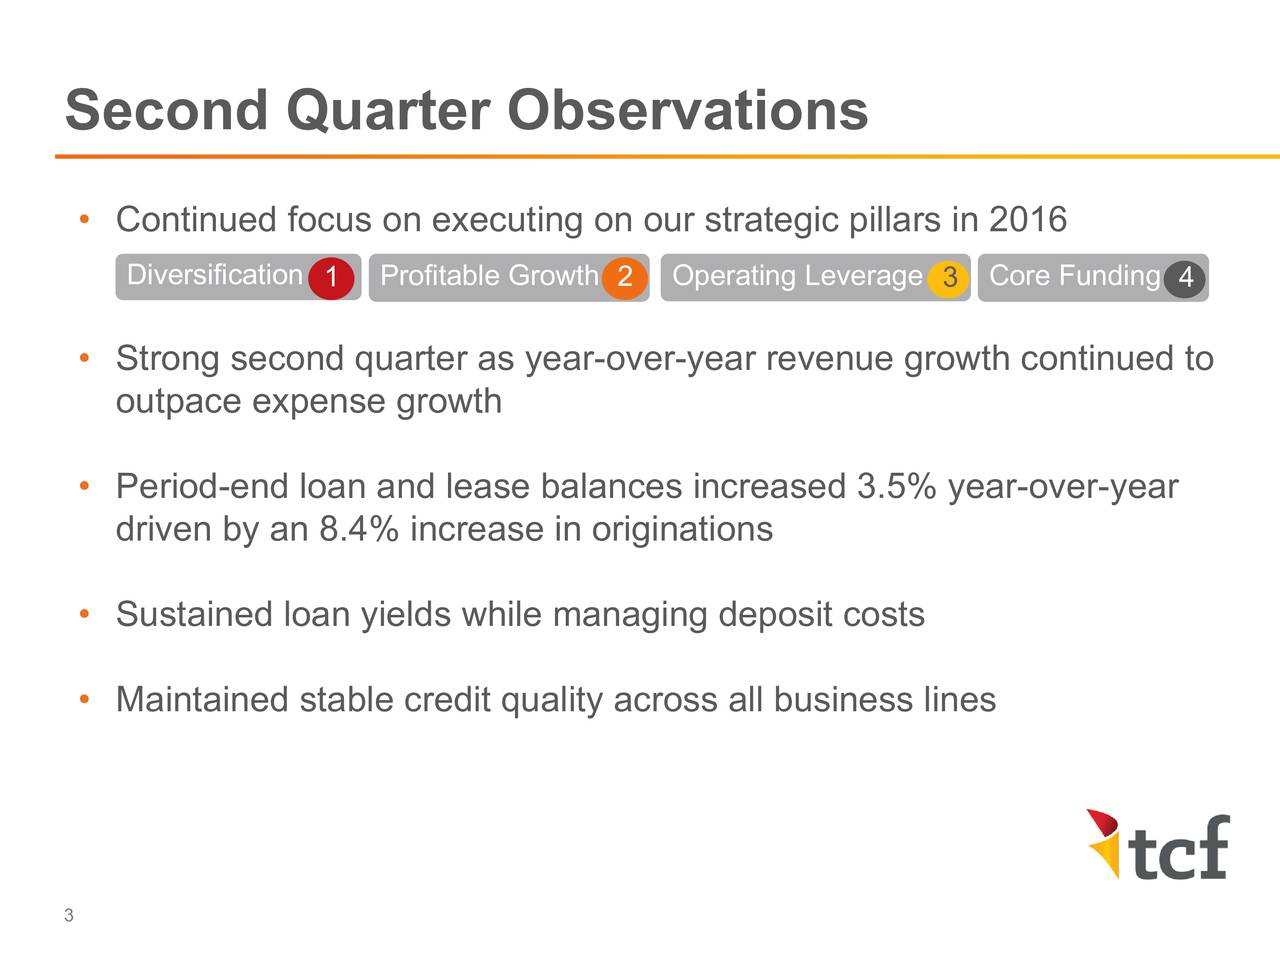 Continued focus on executing on our strategic pillars in 2016 Diversificati1n Profitable Grow2h Operating Leverage3 Core Funding4 Strong second quarter as year-over-year revenue growth continued to outpace expense growth Period-end loan and lease balances increased 3.5% year-over-year driven by an 8.4% increase in originations Sustained loan yields while managing deposit costs Maintained stable credit quality across all business lines 3